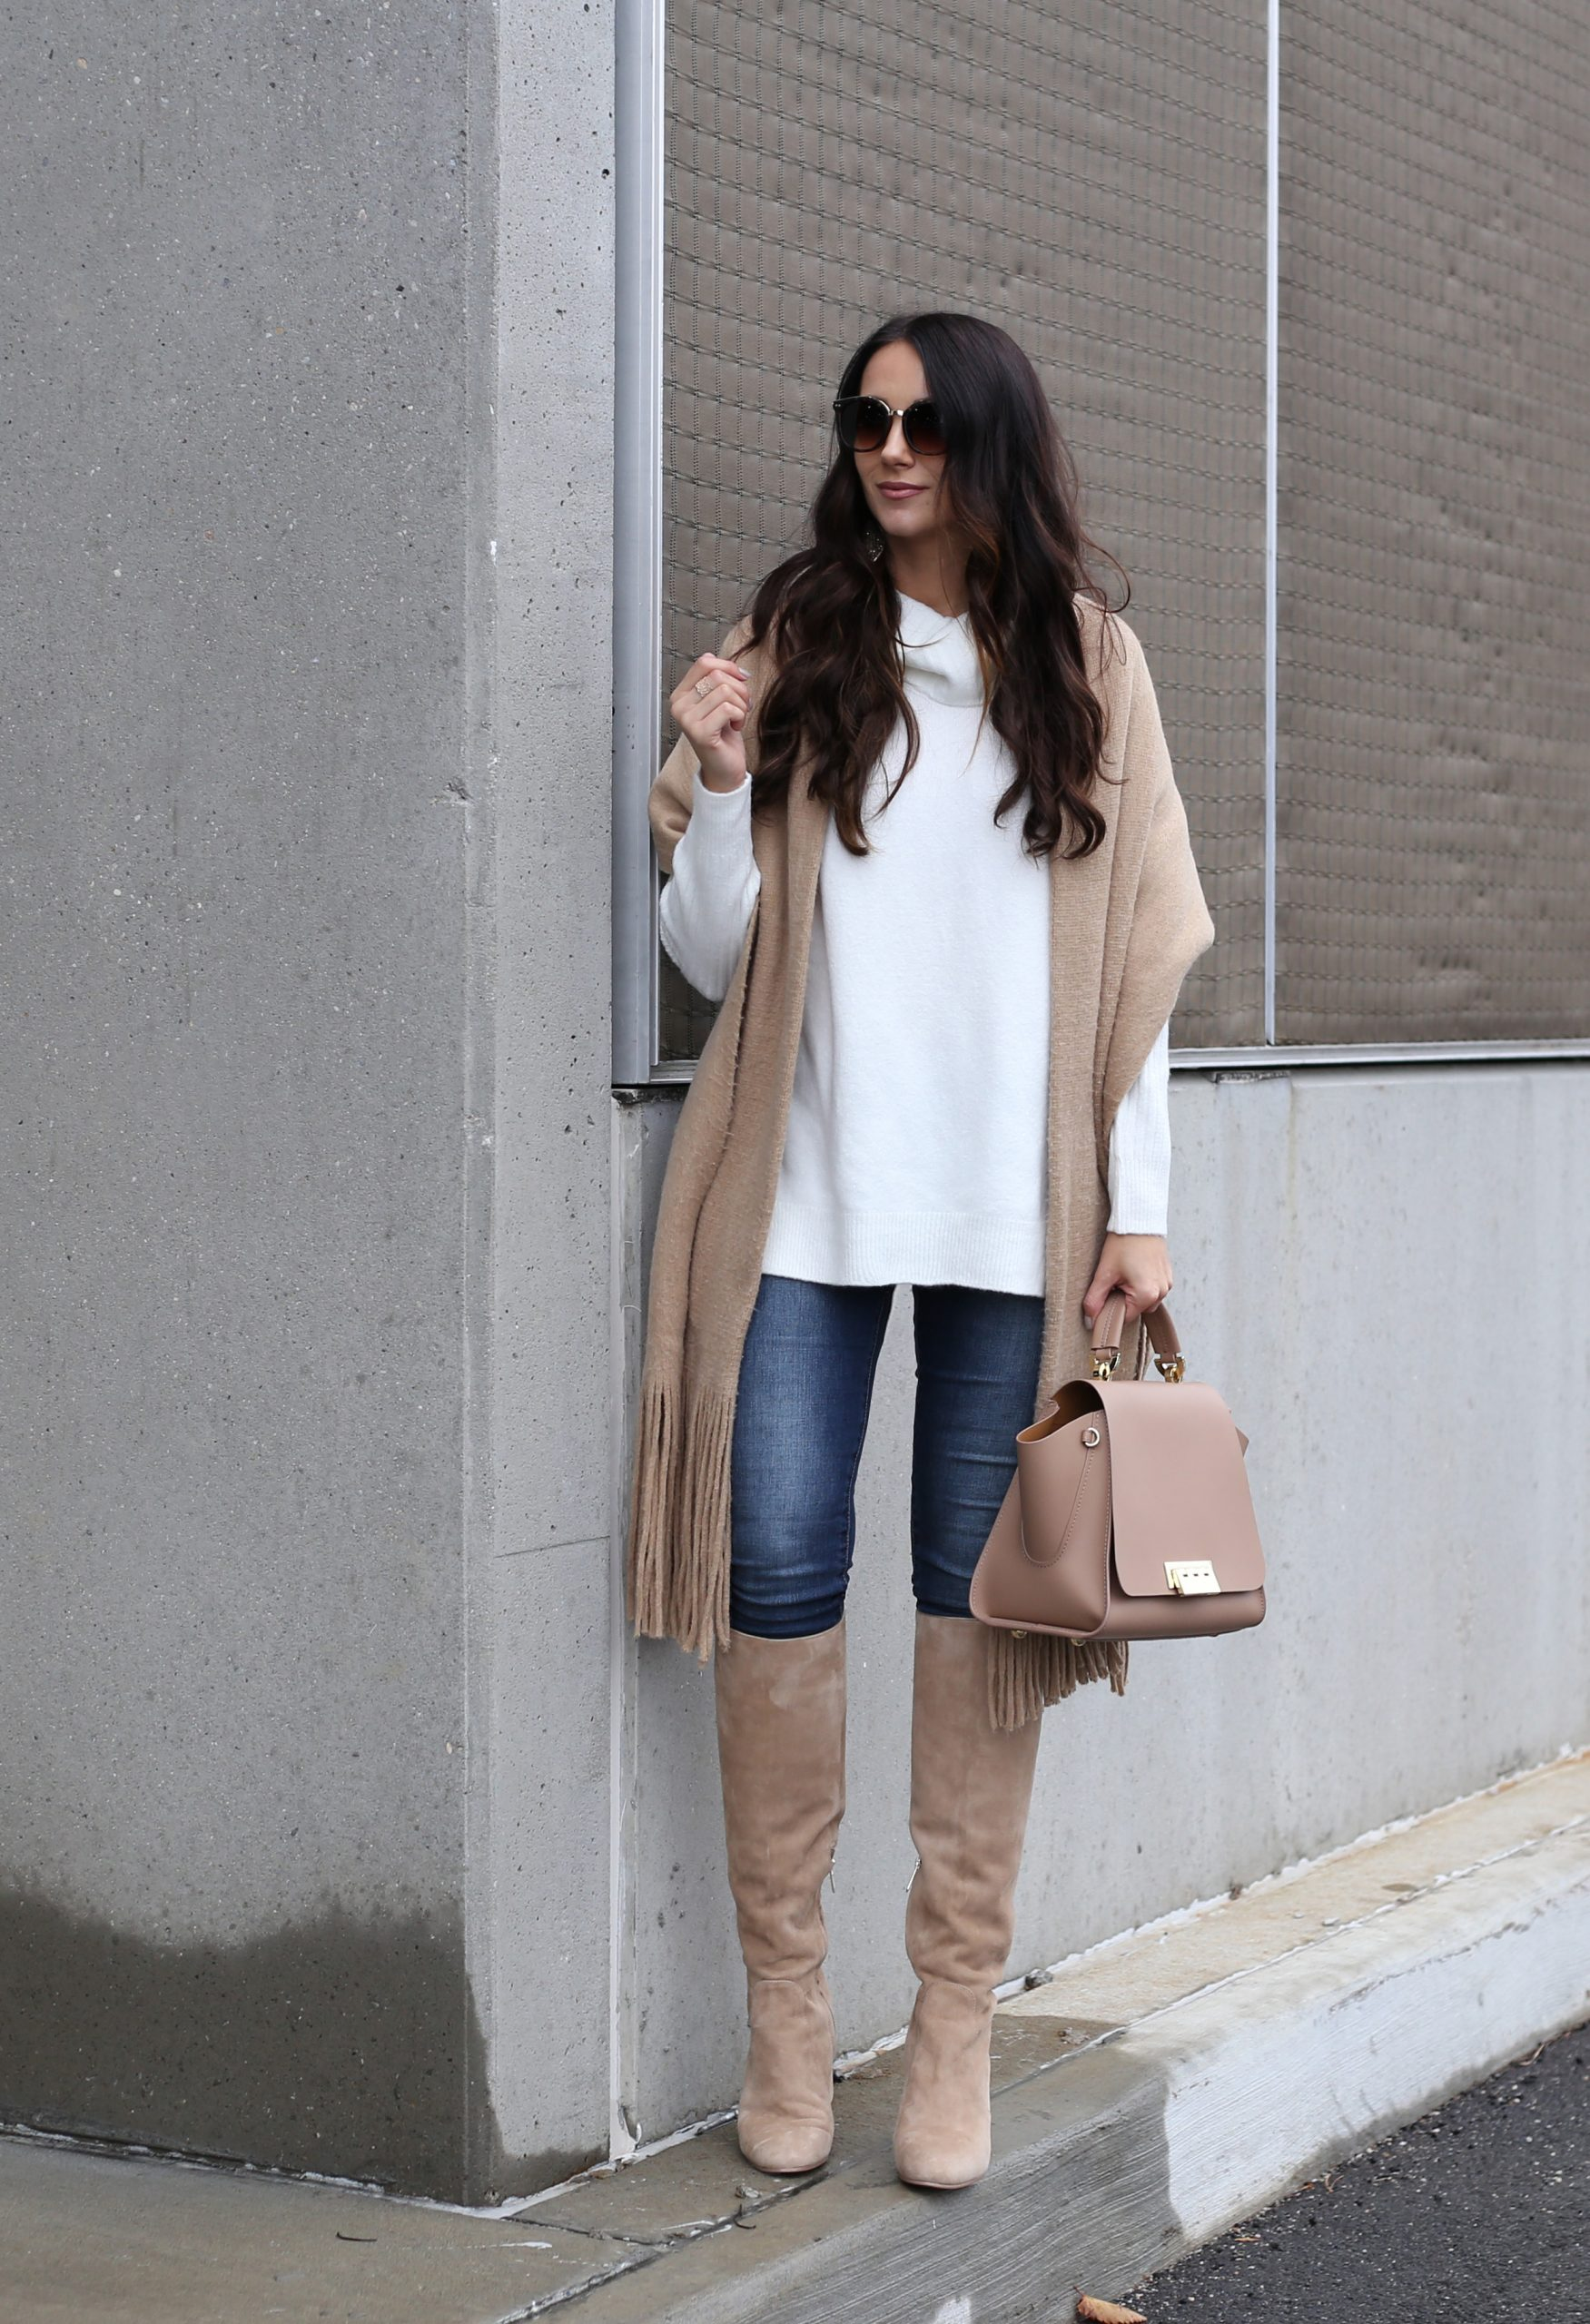 blogger Anna Monteiro of Blushing ROse style wearing chunky scarf tunic sweater and tall boots in casual holiday outfit